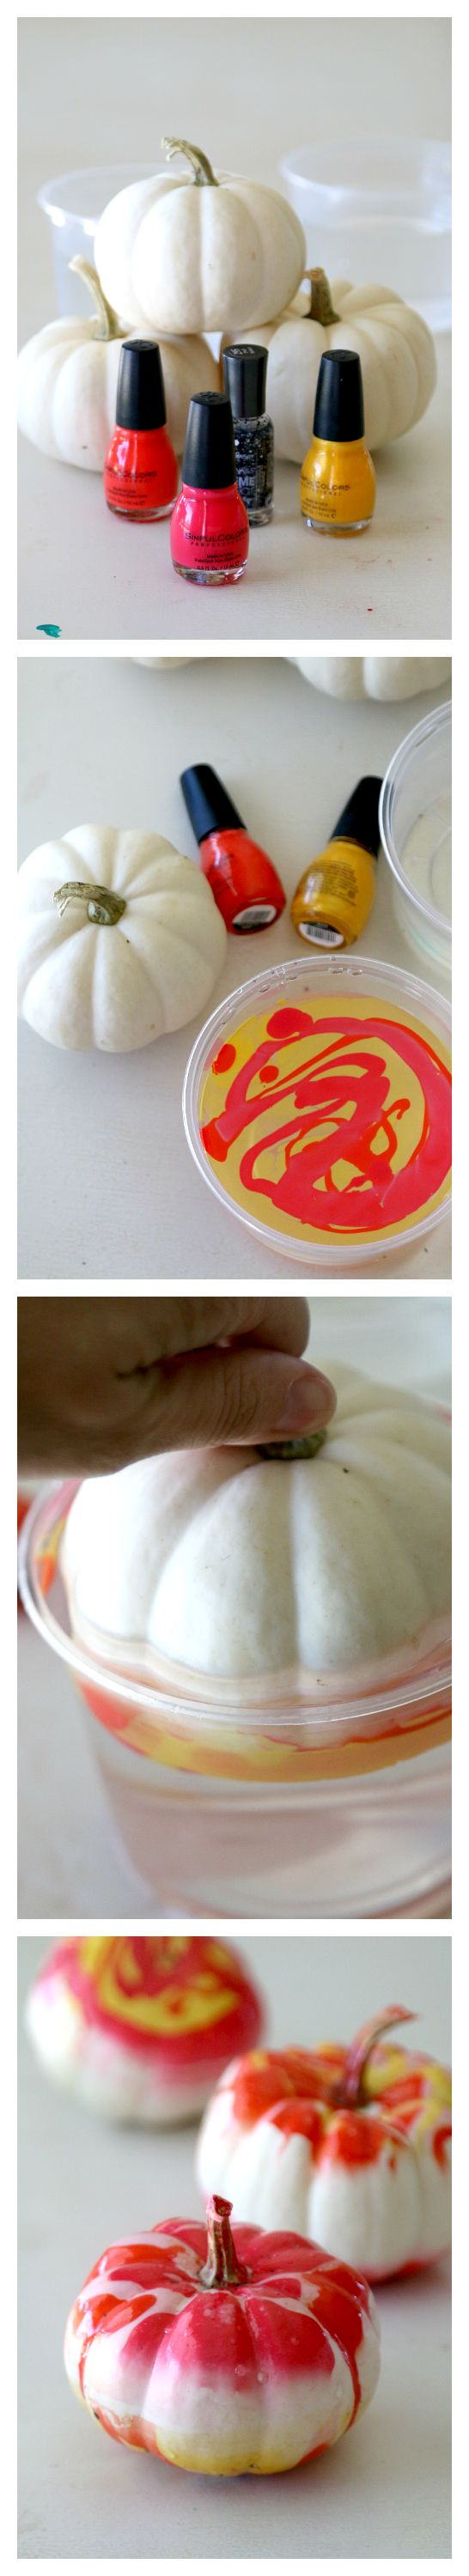 Marbling a Pumpkin, Easy Step by Step tutorial to this fun and unique No Carve pumpkin craft, great for glamming up the holidays with any left over nail polish